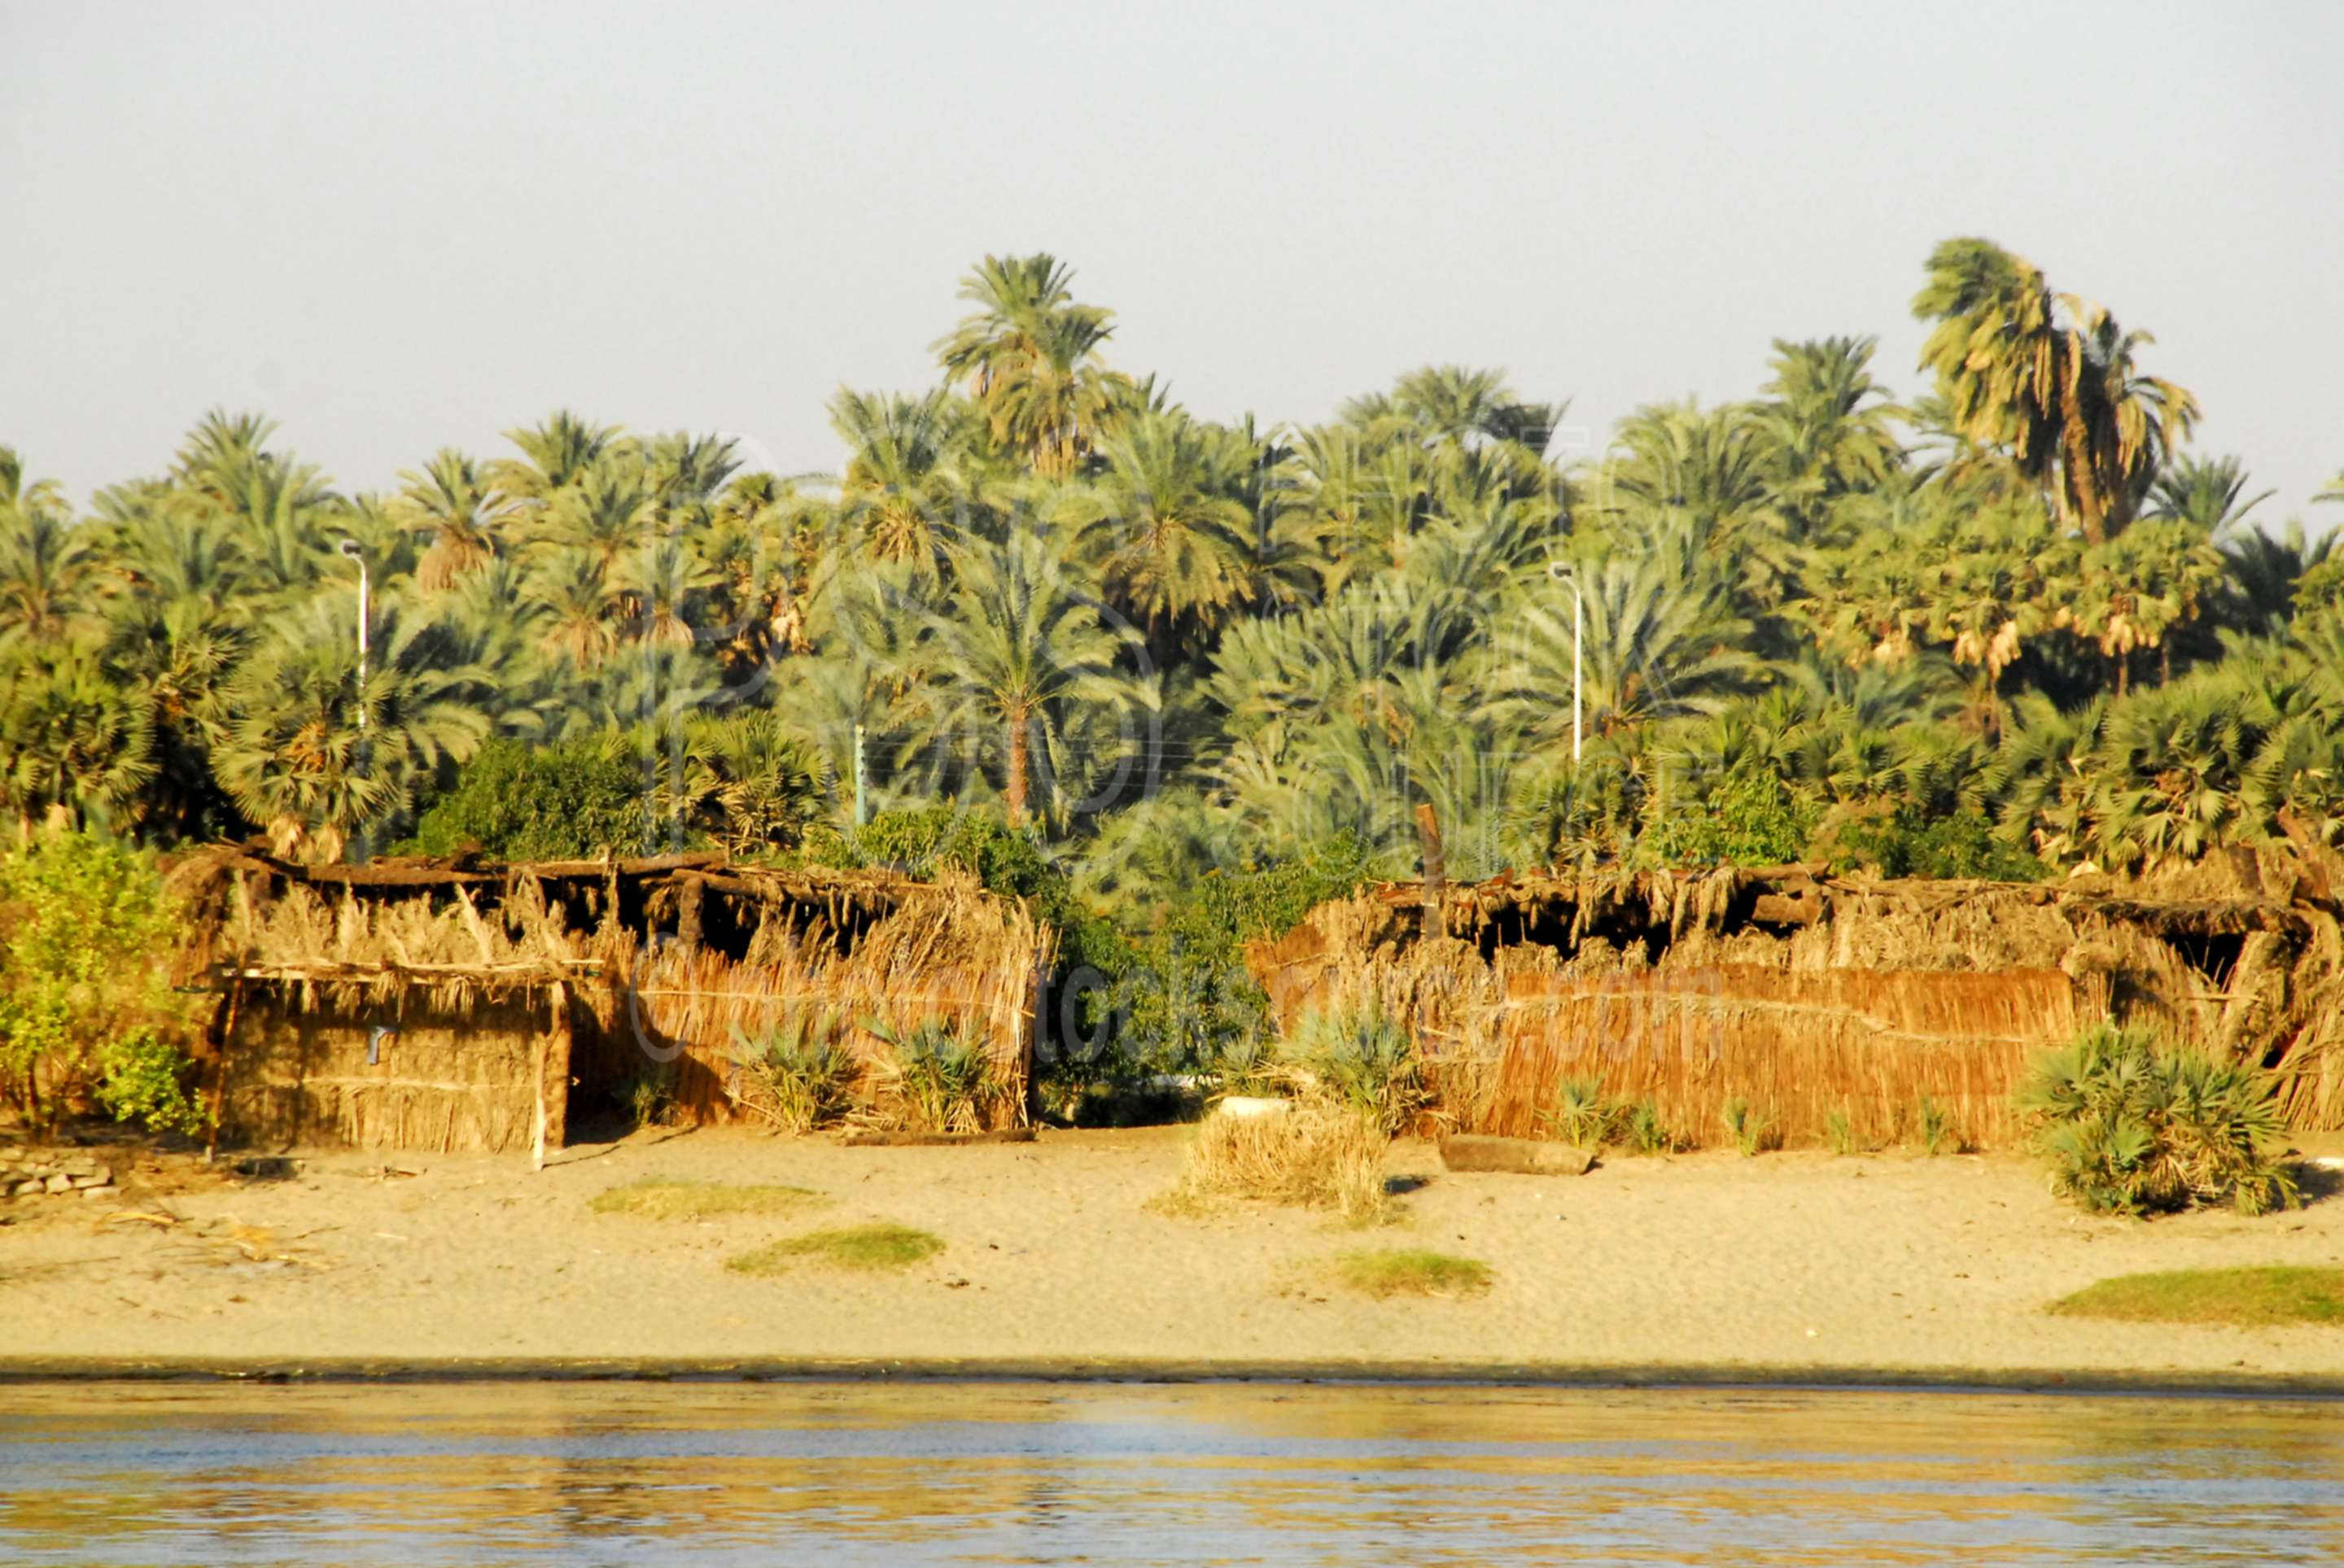 Grass House on Nile River,nile,nile river,house,palm,palm trees,lakes rivers